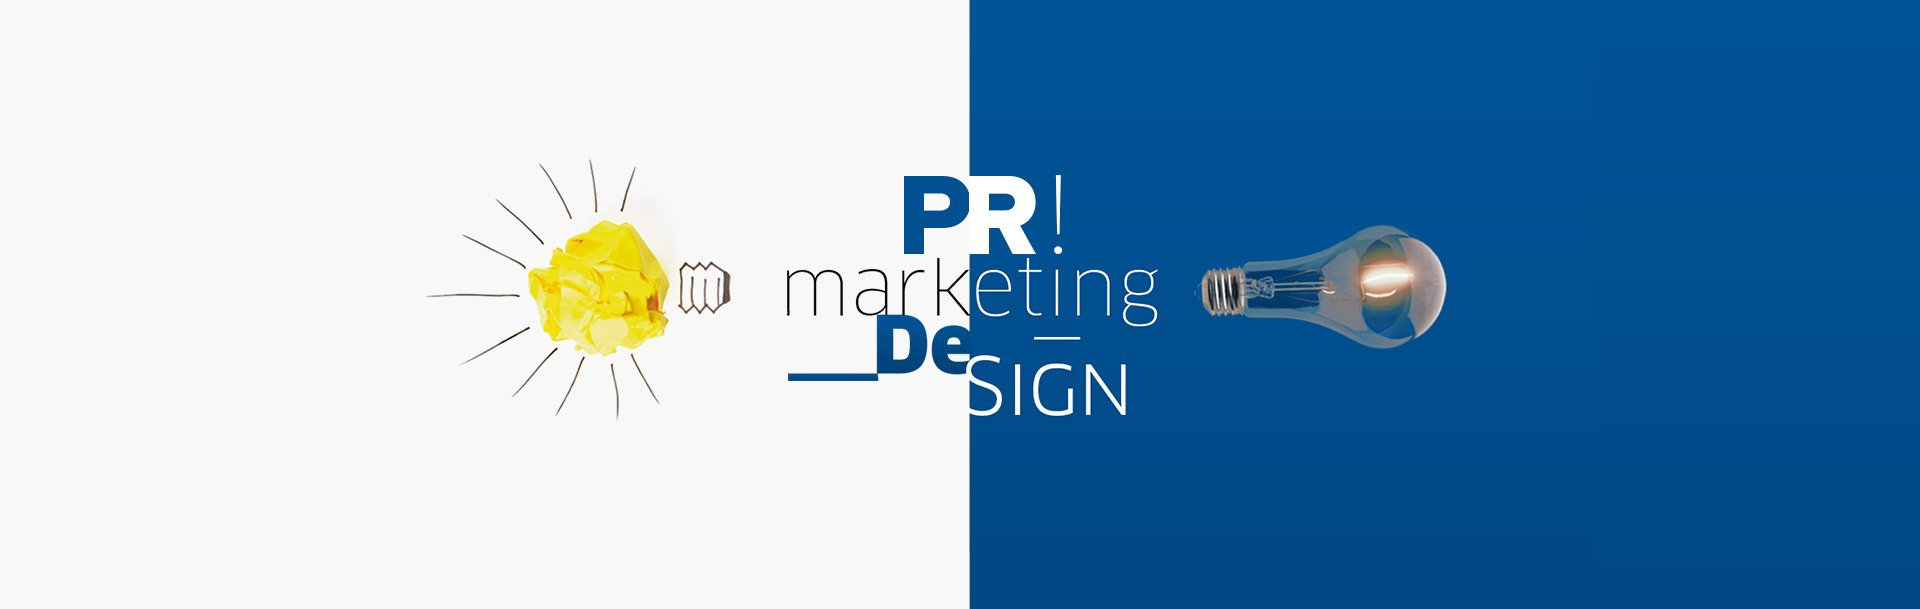 PR Marketing & Design